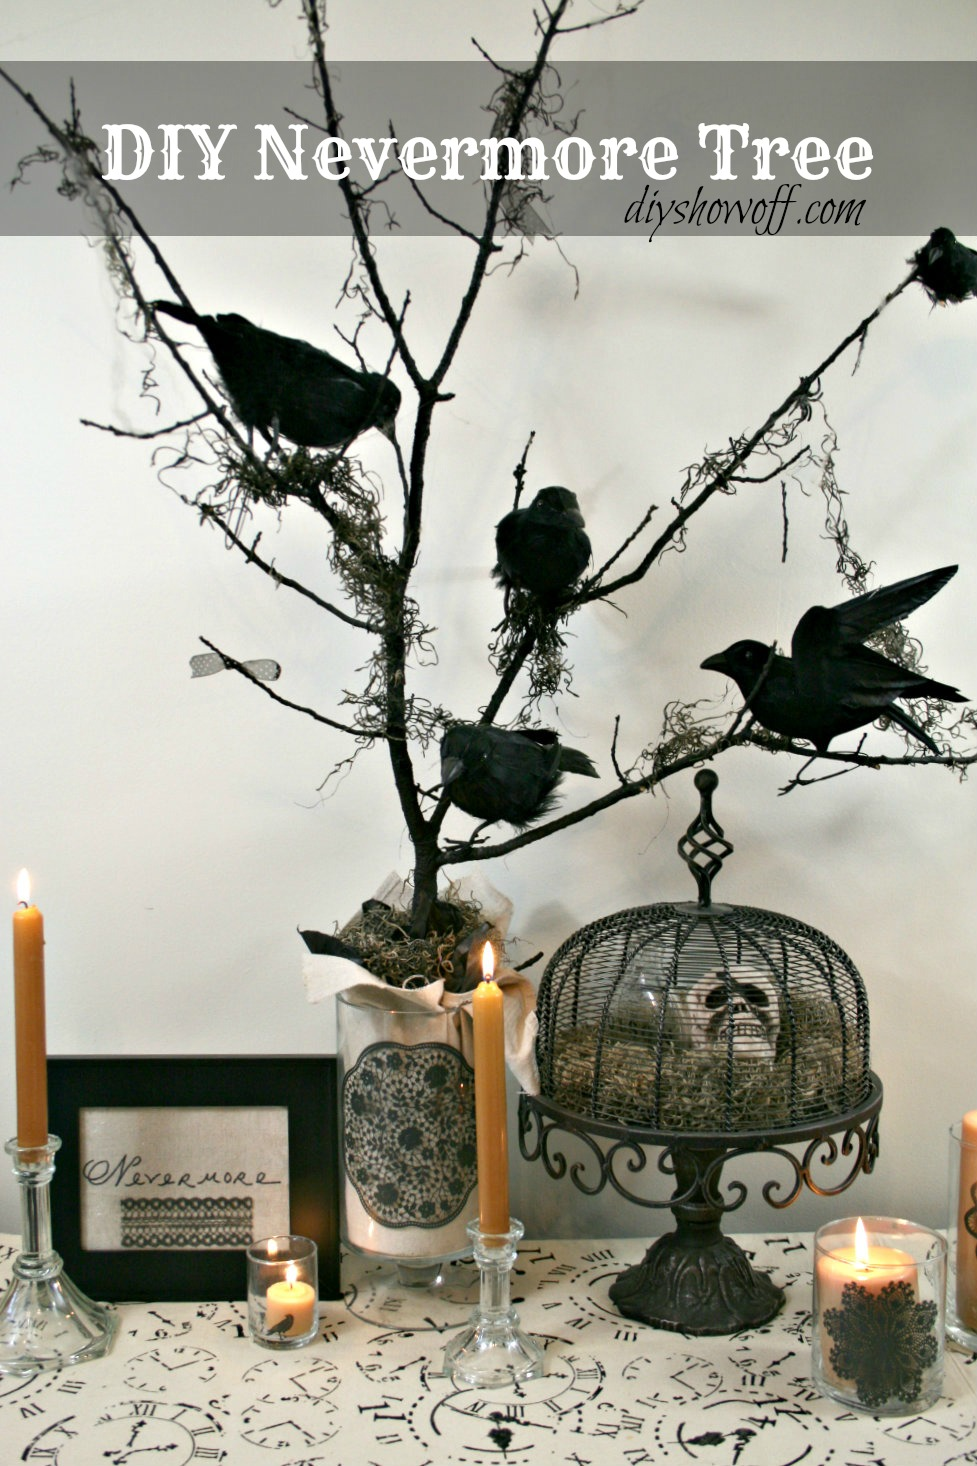 Diy Halloween Nevermore Tree Decordiy Show Off Diy